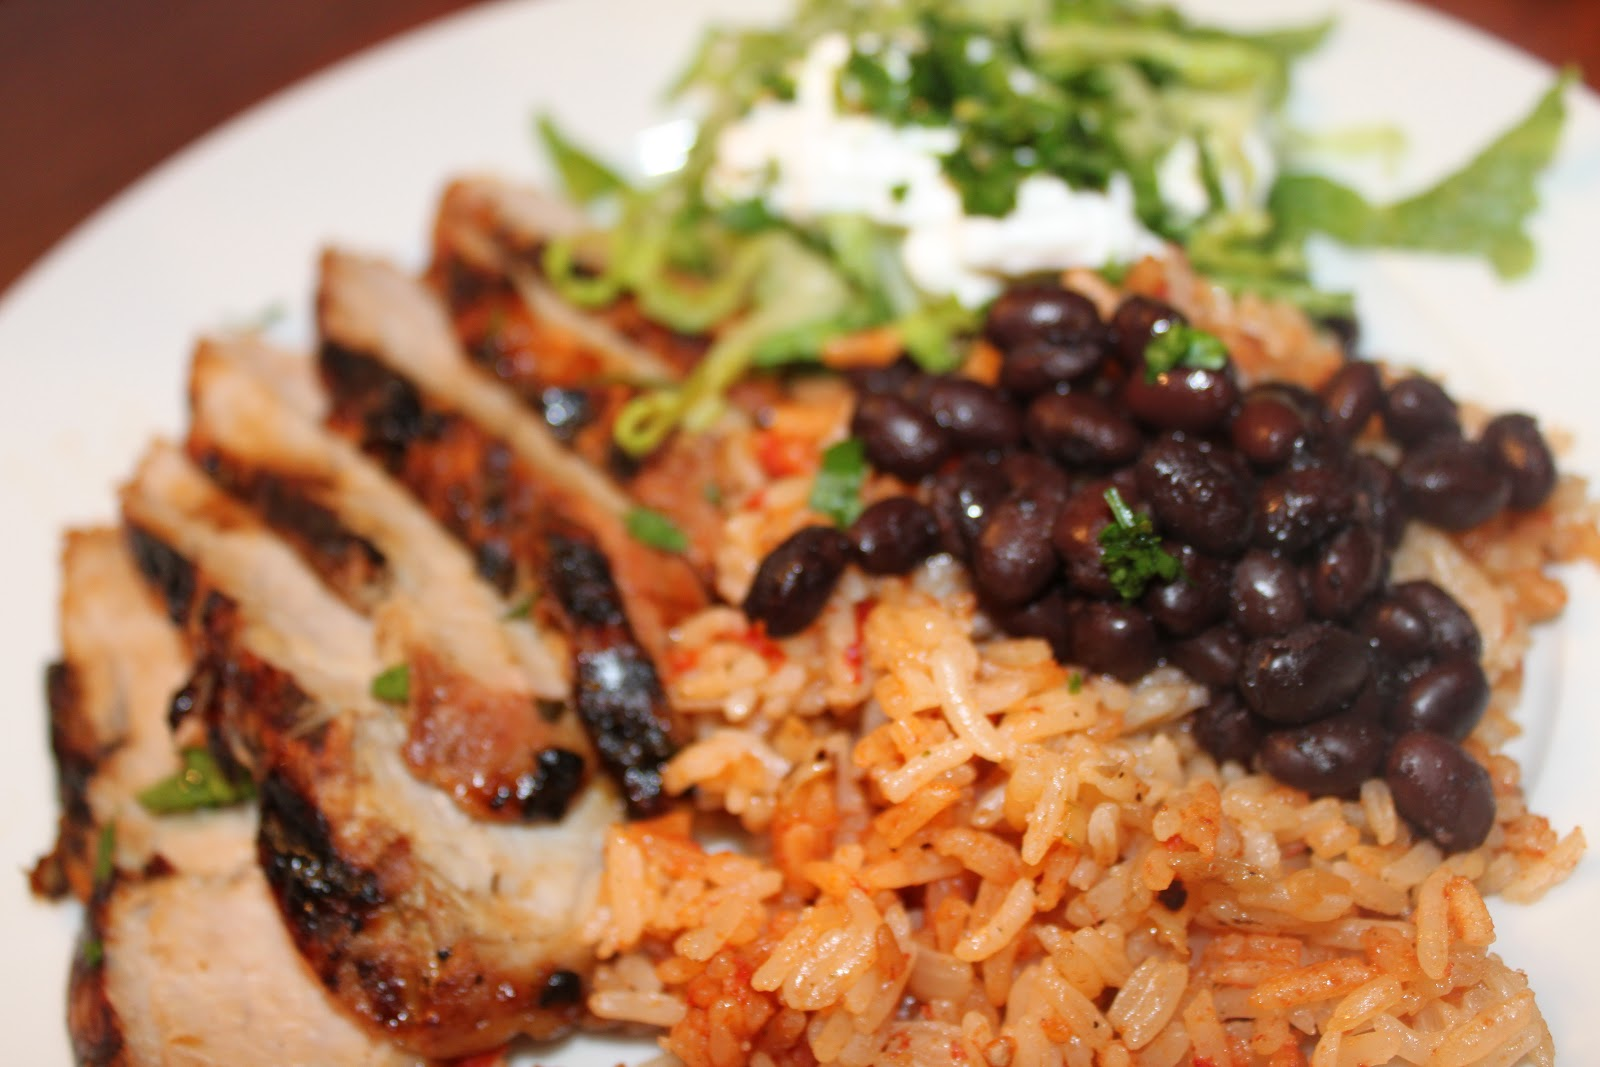 ... Kitchen: Grilled Pork Tenderloin with Cuban Style Black Beans and Rice